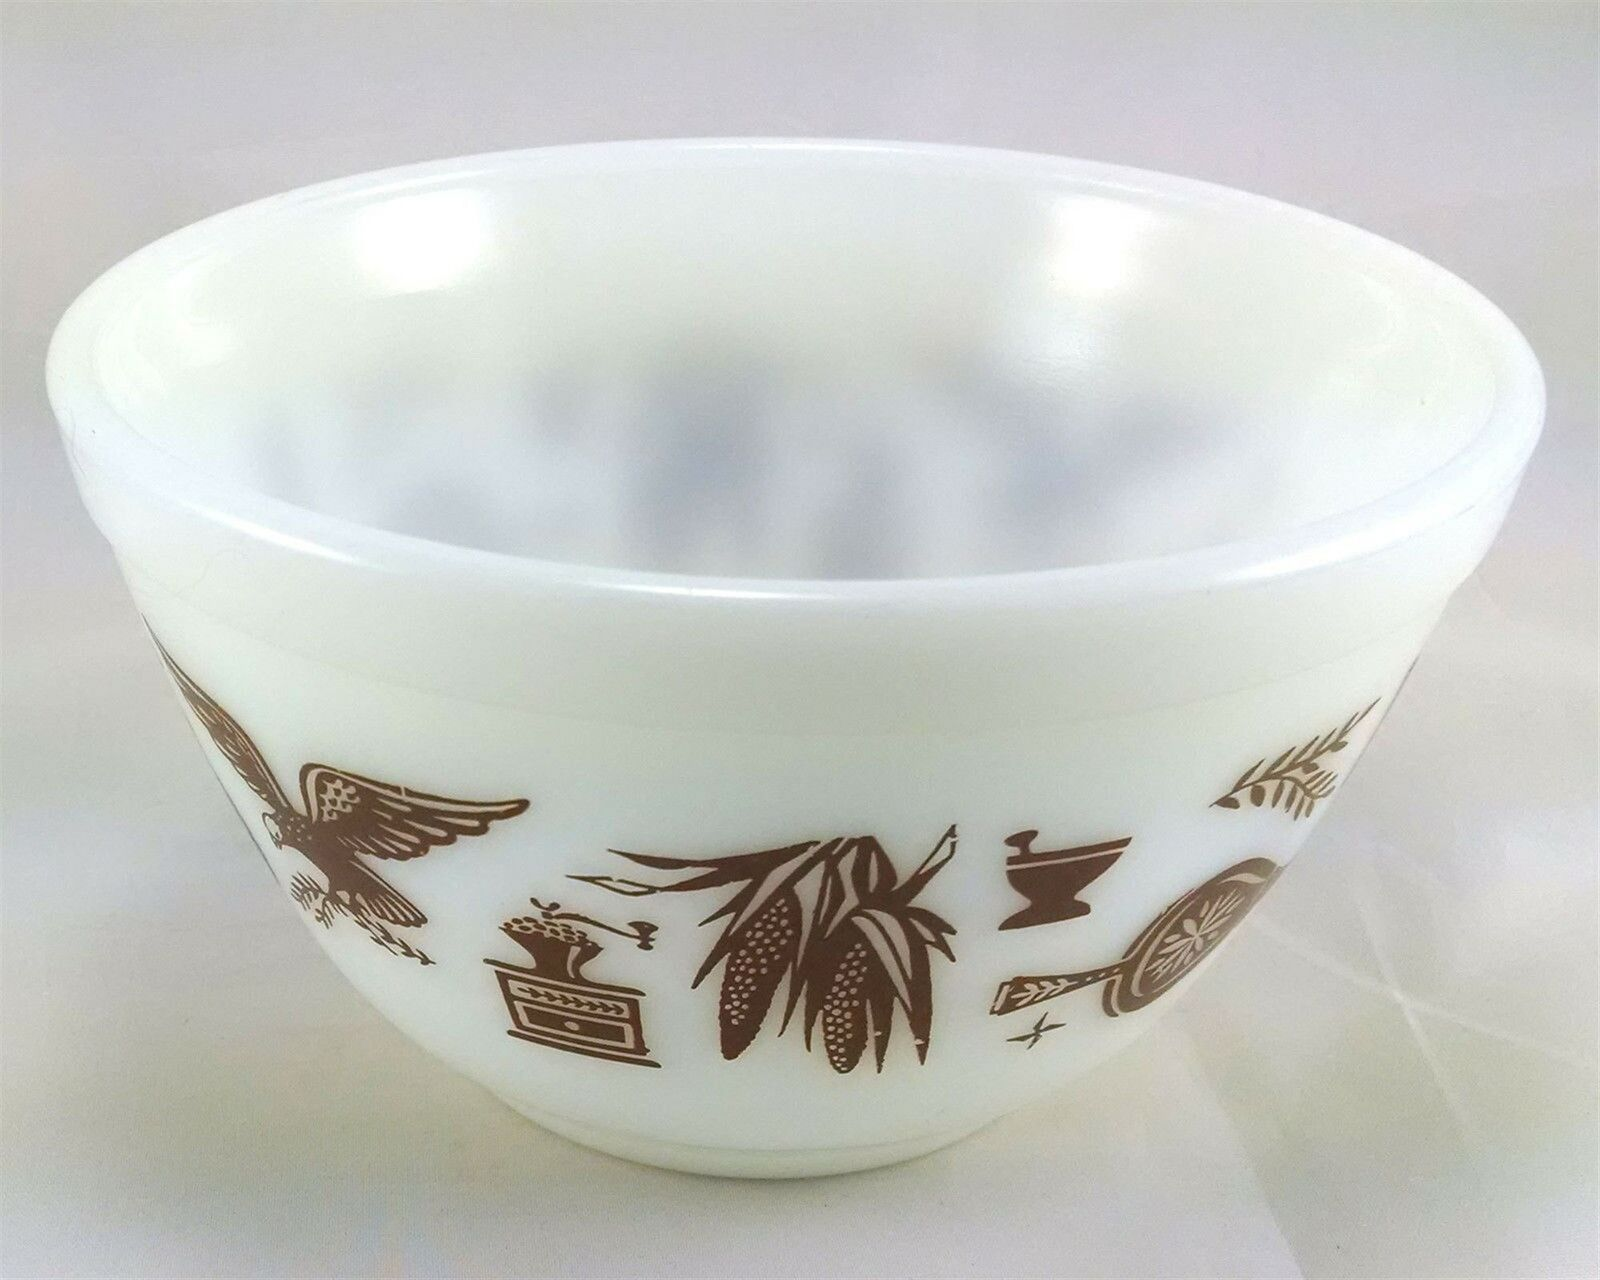 Pyrex 401 Americana 1 1/2 Pint Vintage Serving Mixing Bowl image 3